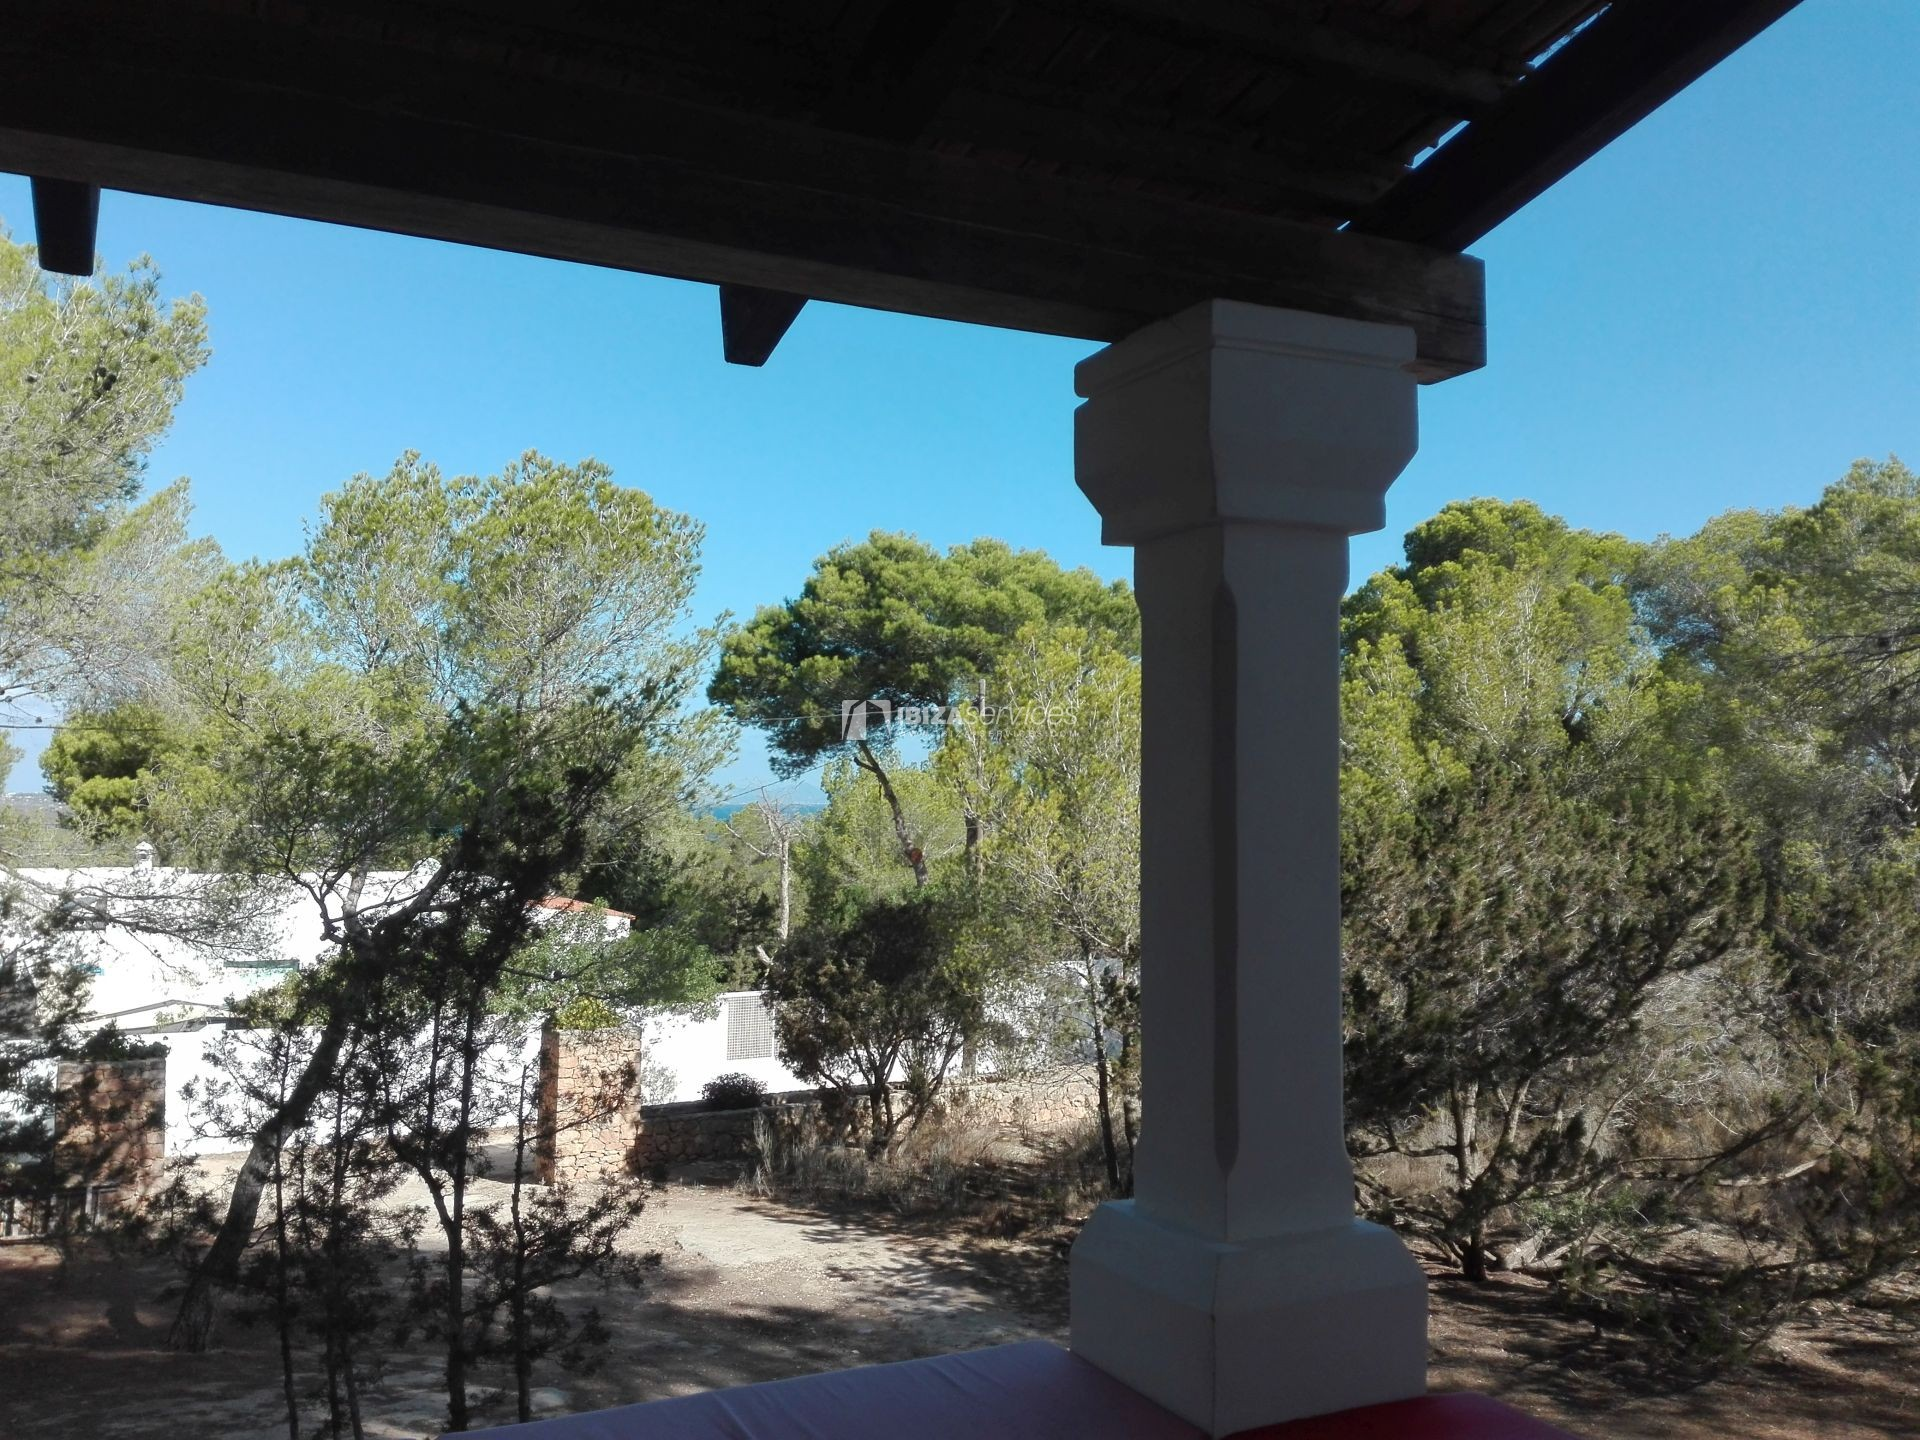 4 bedroom Villa for rent in Formentera perspectiva 5